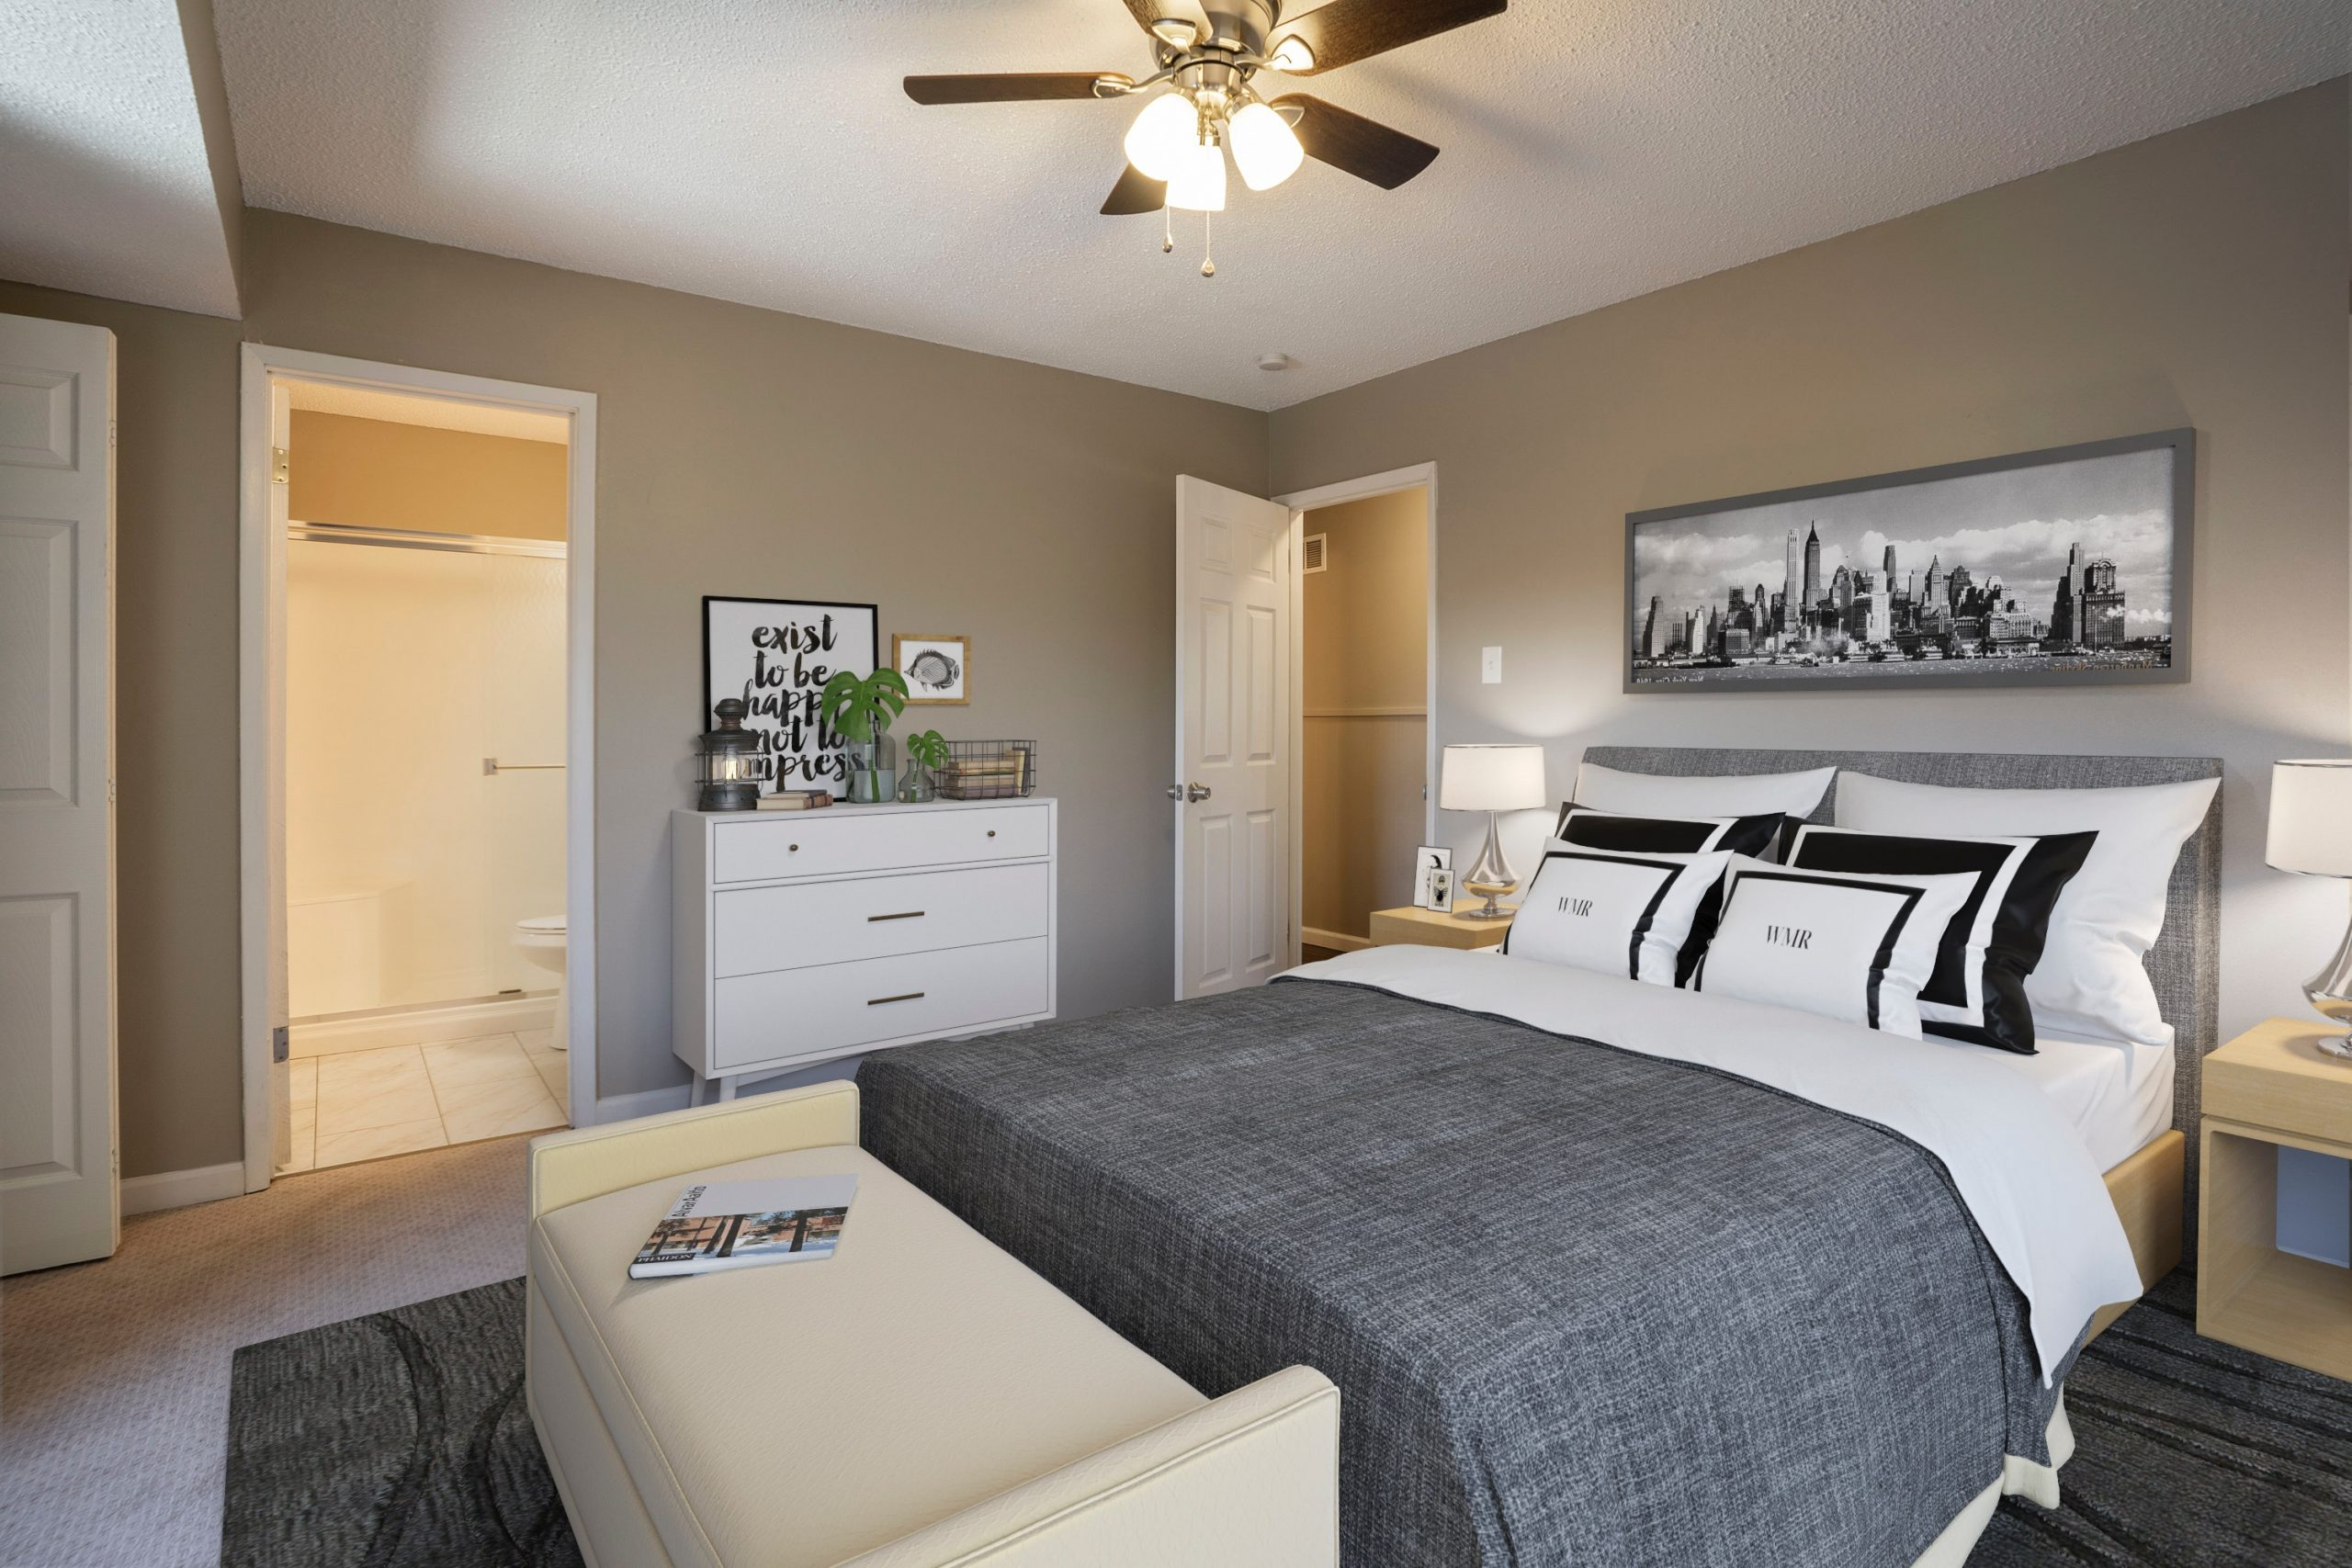 Why choose an Ottoman fabric storage bed for your master bedroom?